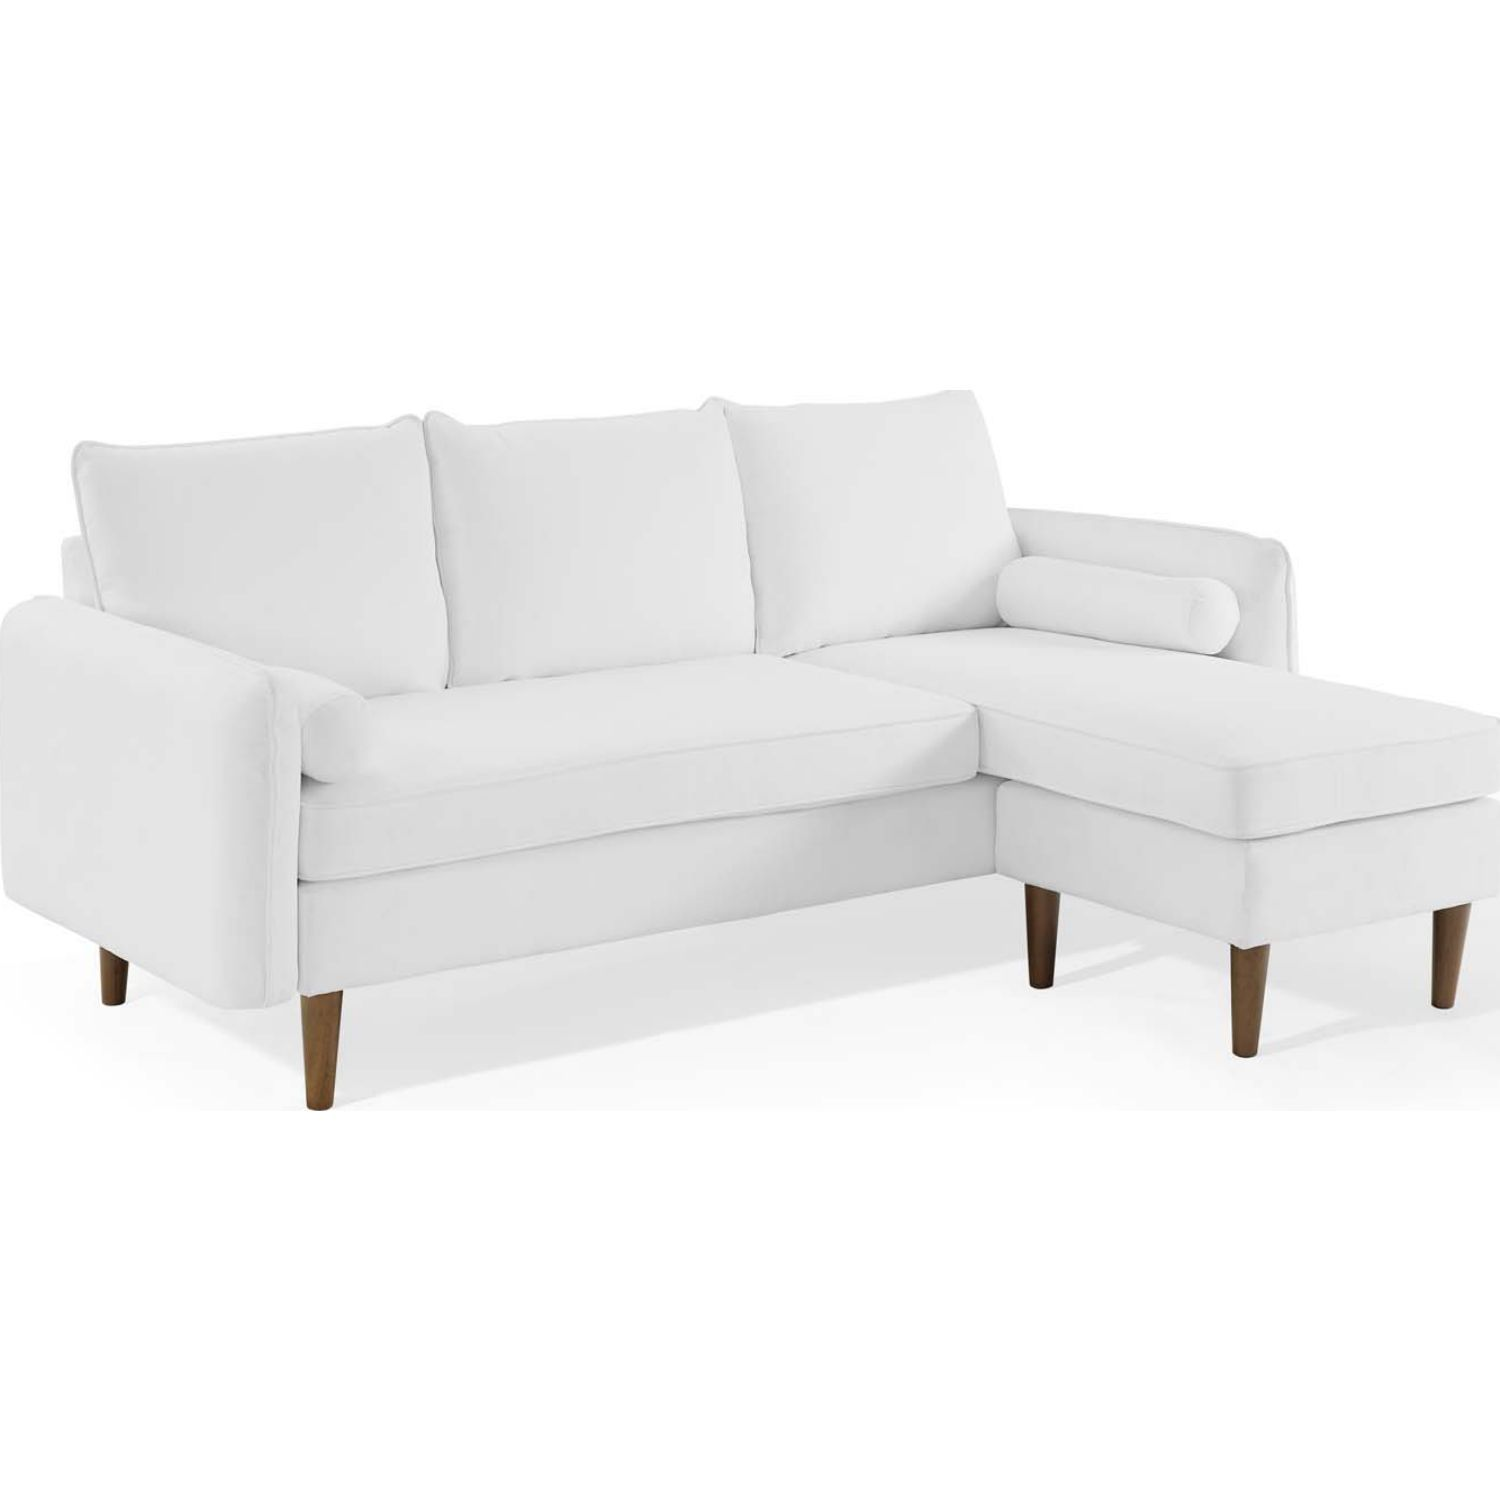 Modway Eei 3867 Whi Revive Right Or Left Sectional Sofa White Fabric In 2020 Sectional Sofa Fabric Sofa Design White Fabric Sofa